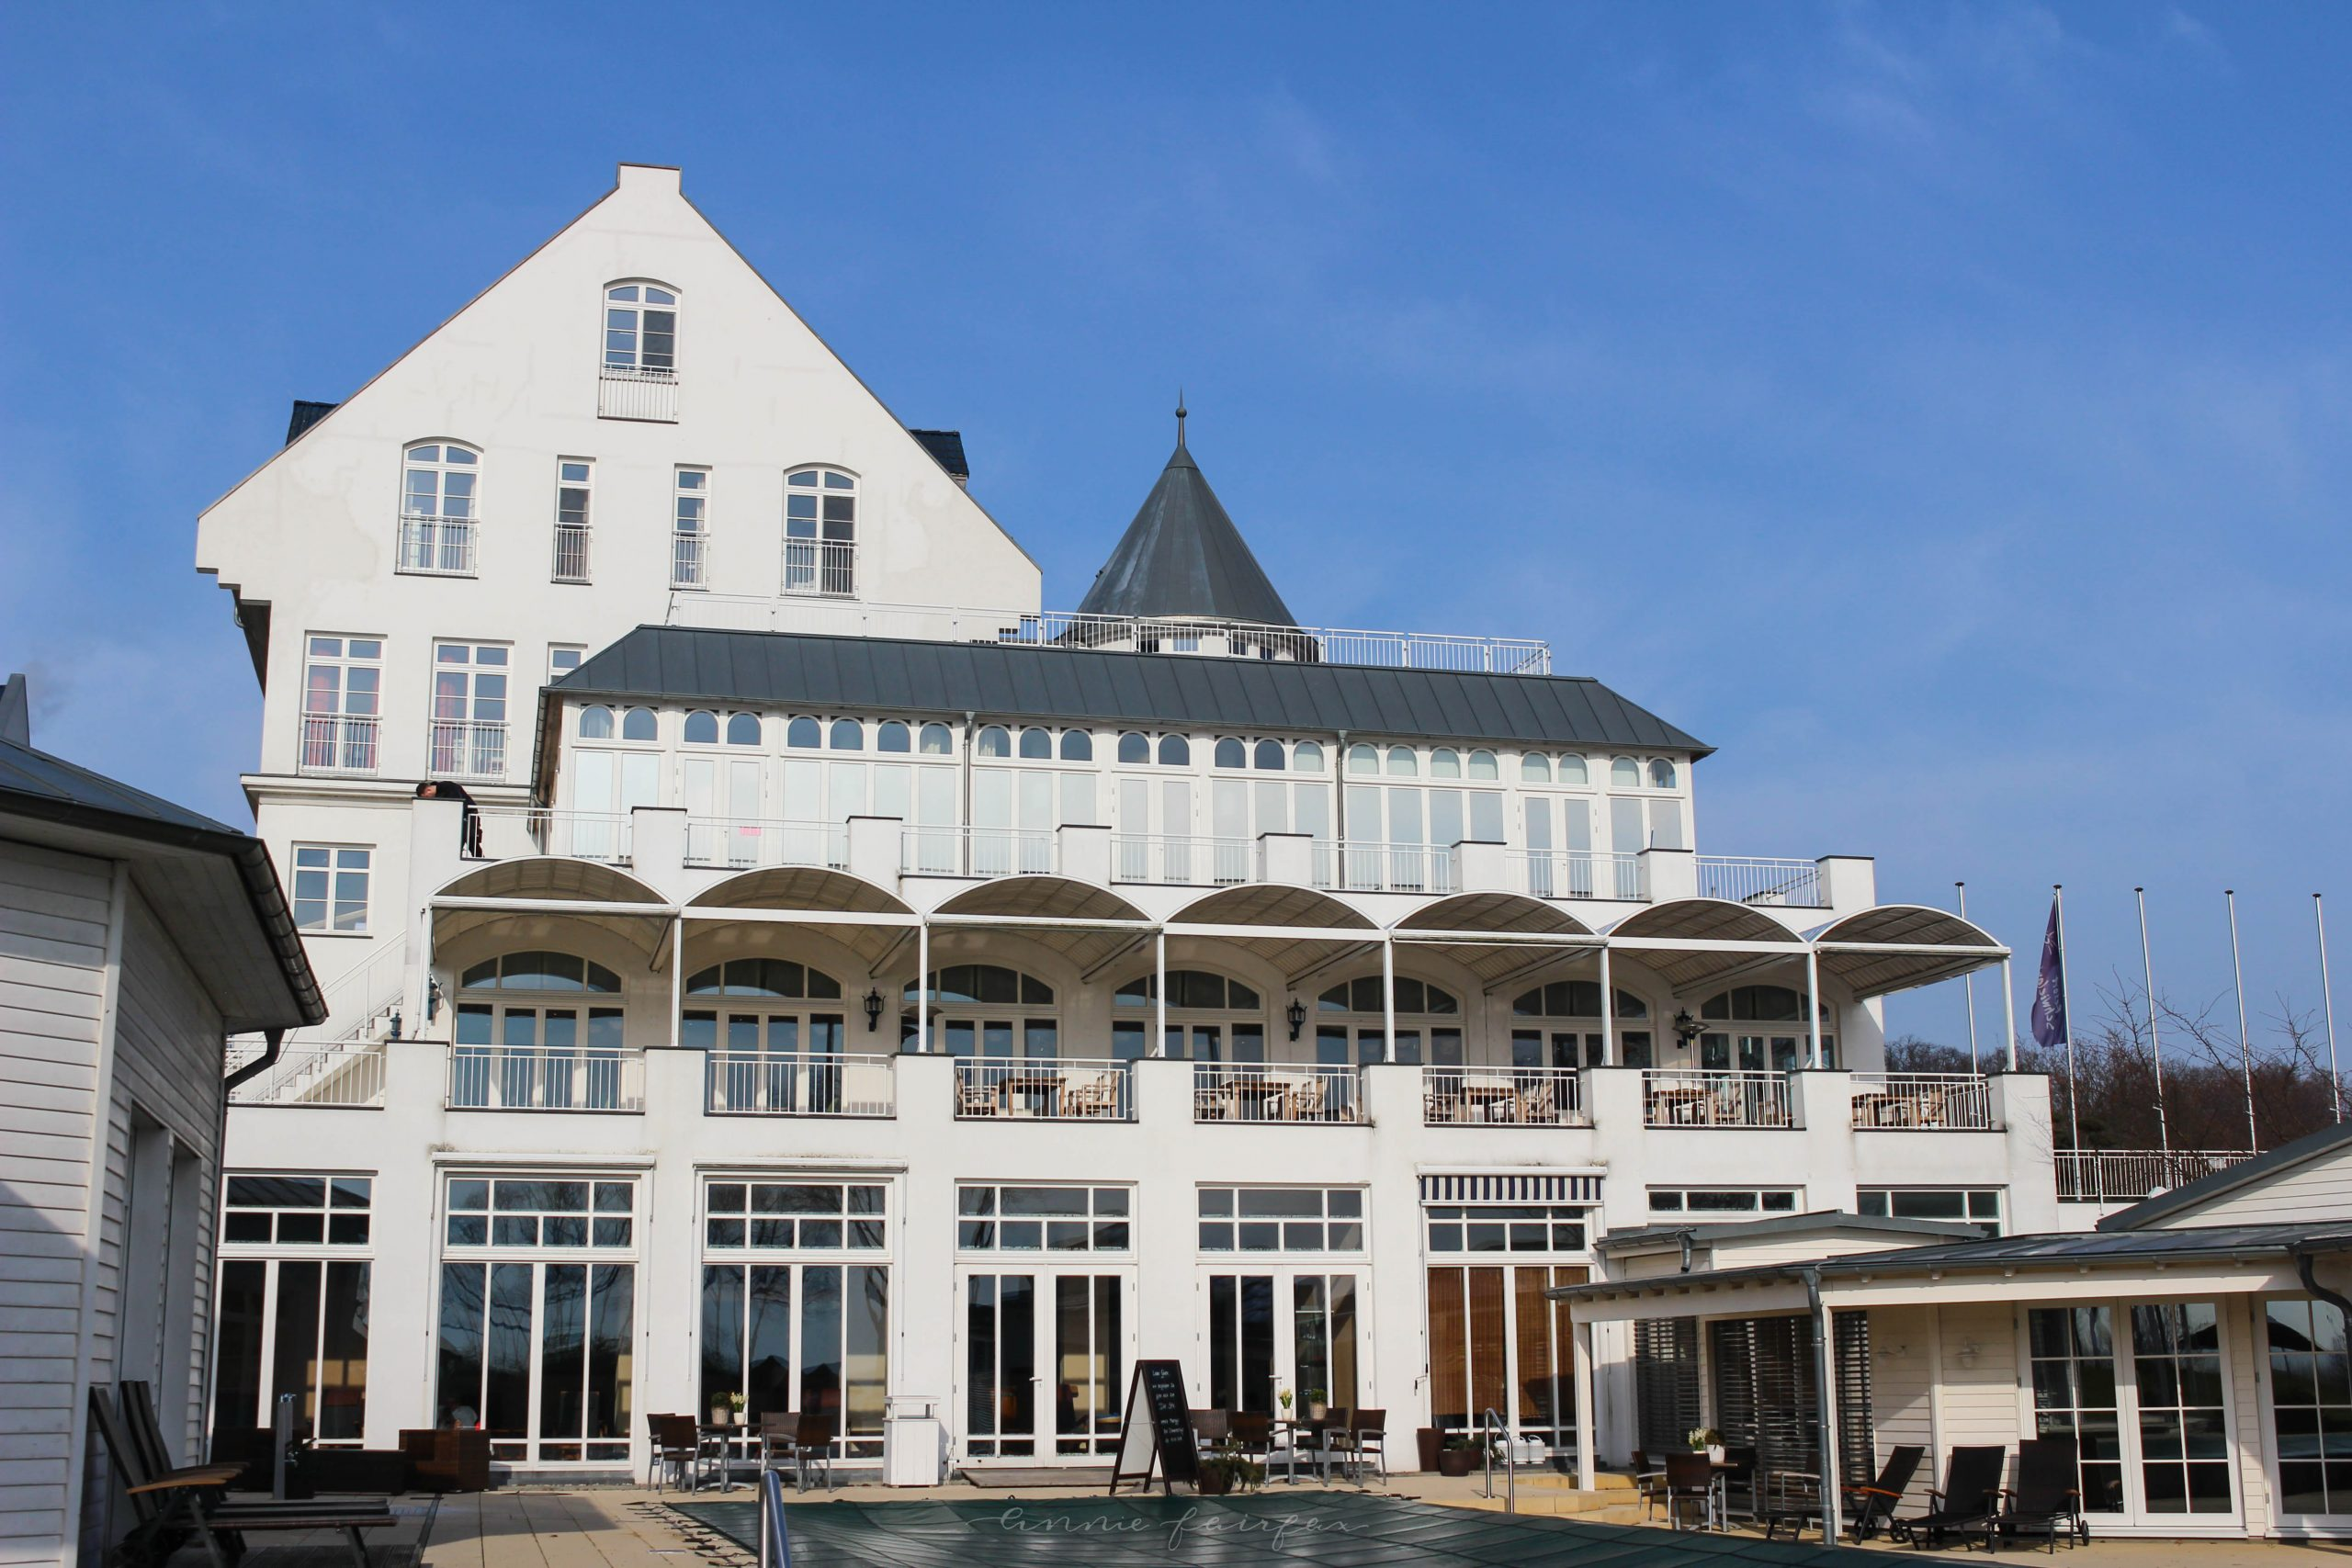 Resort Schwielosee Luxury Hotels and Resorts of the World in Berlin Werder Germany